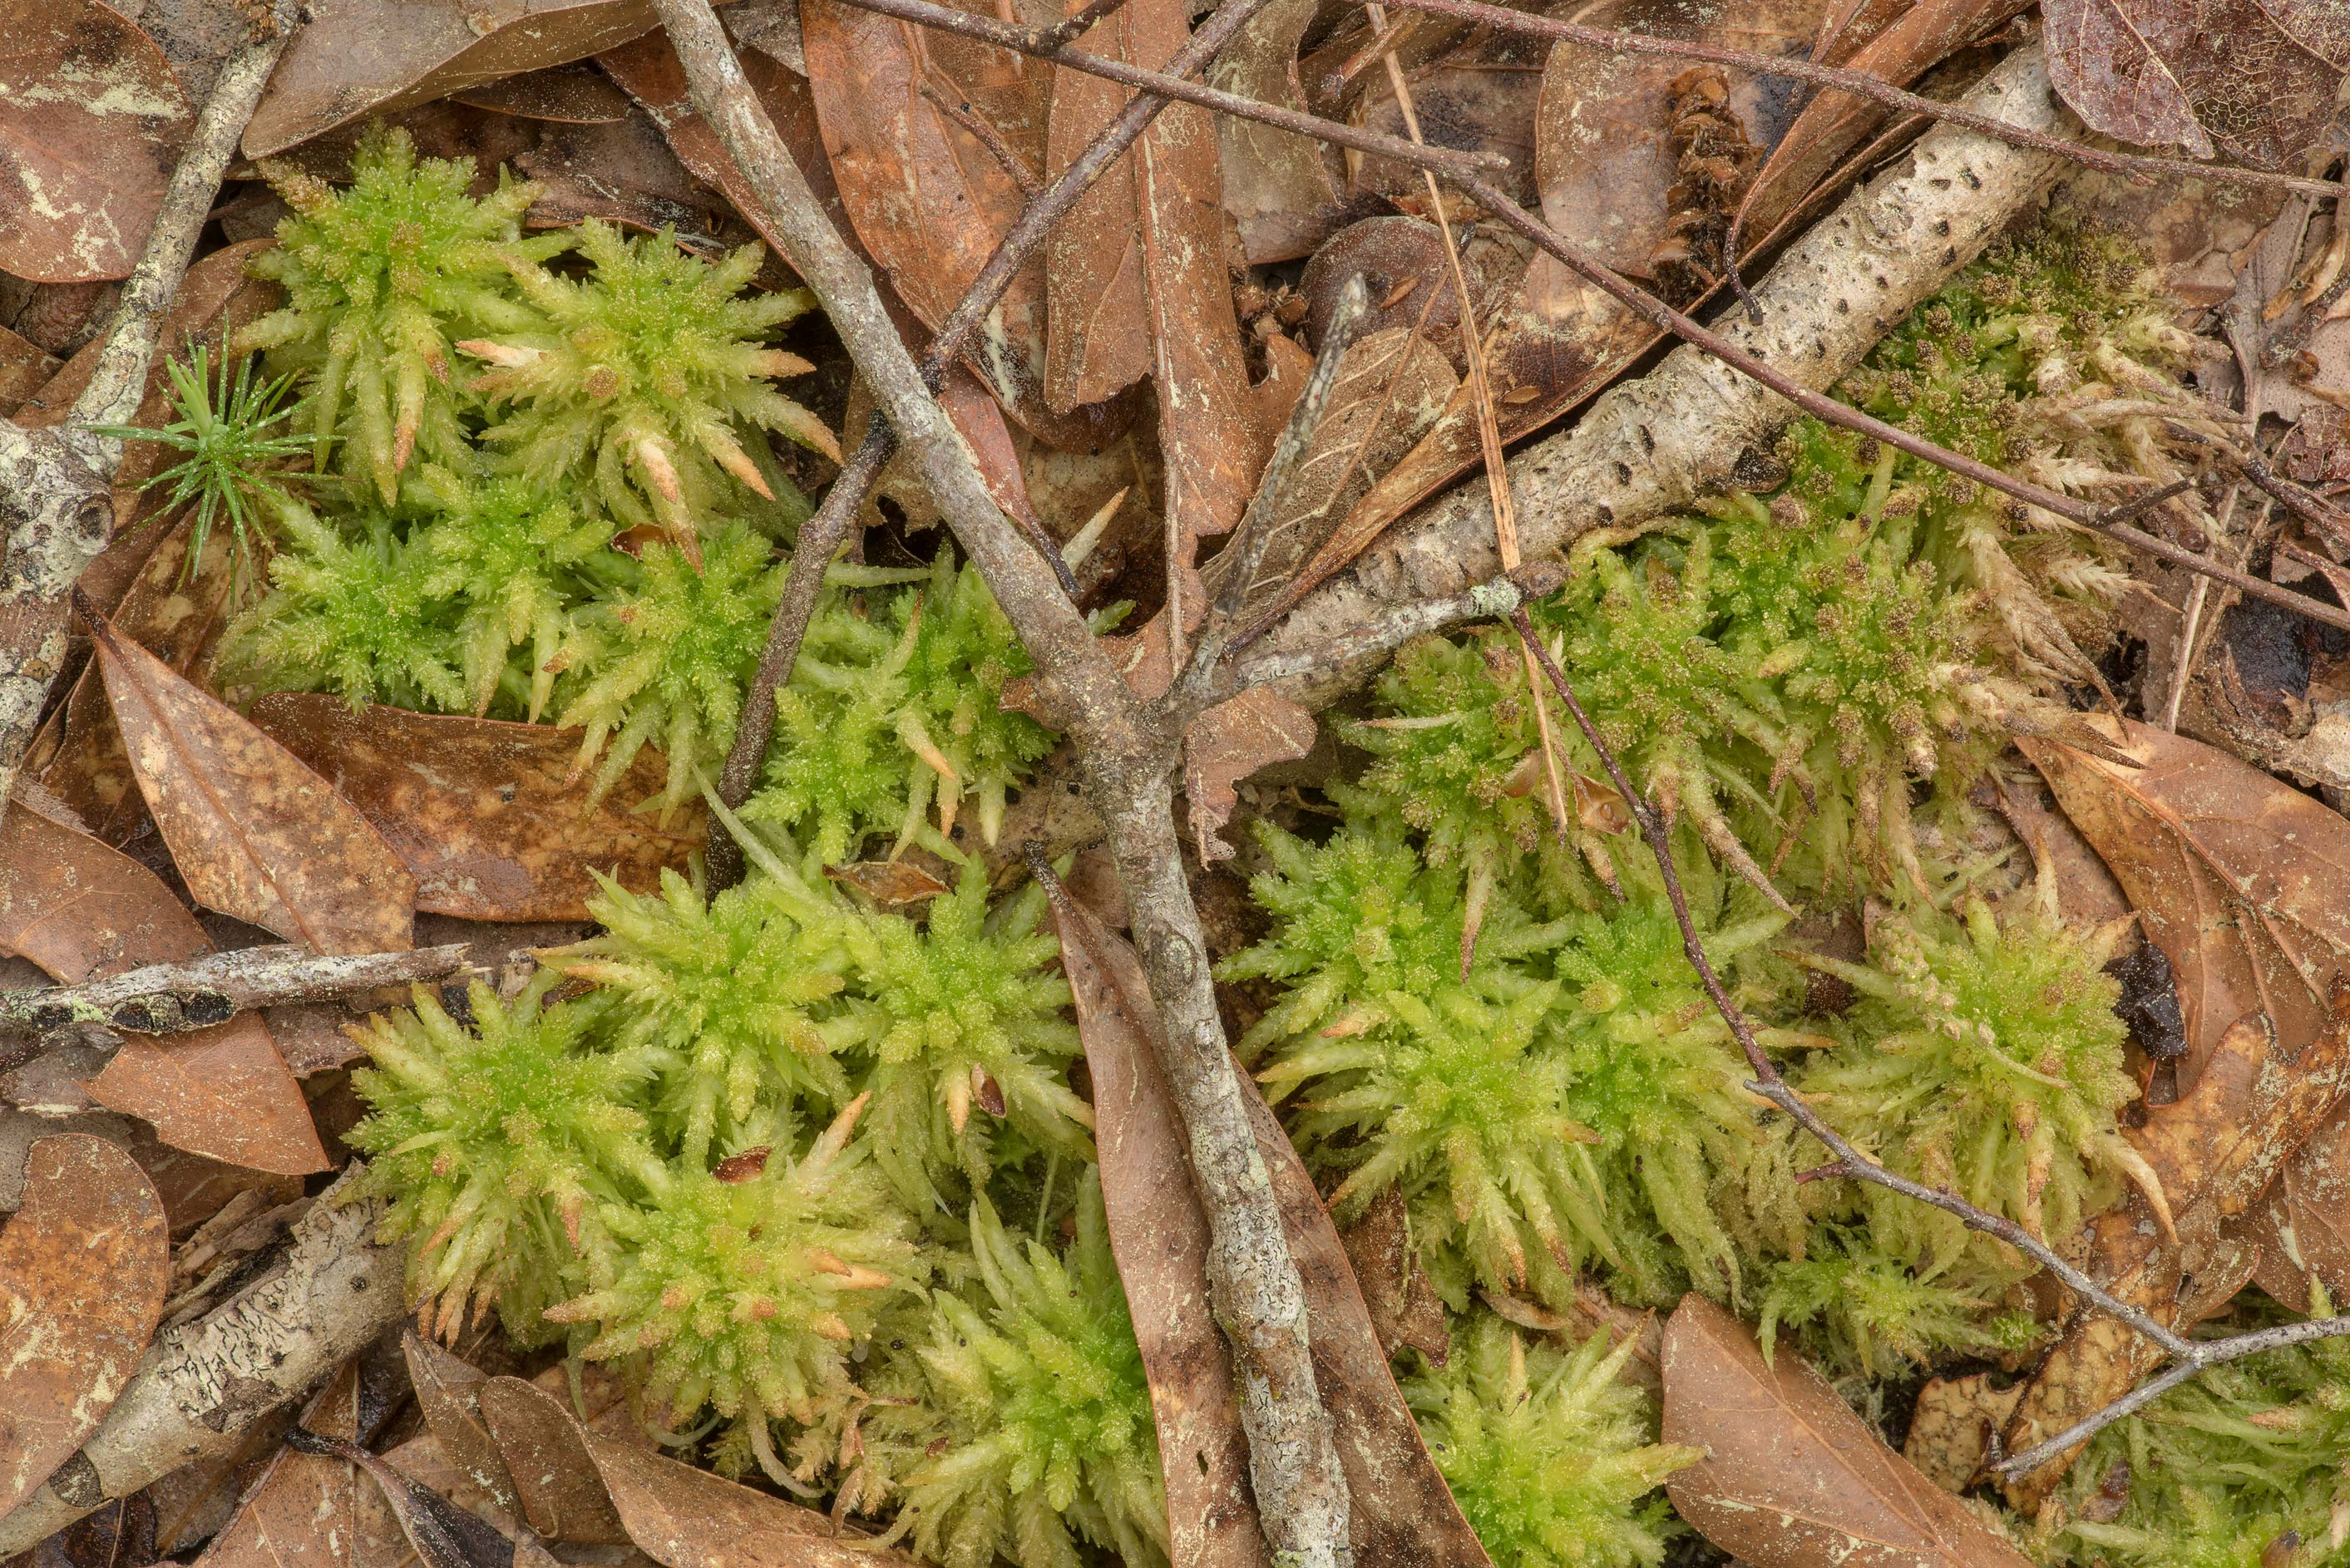 Peat moss, most likely Sphagnum lescurii, on...National Forest. Shepherd, Texas